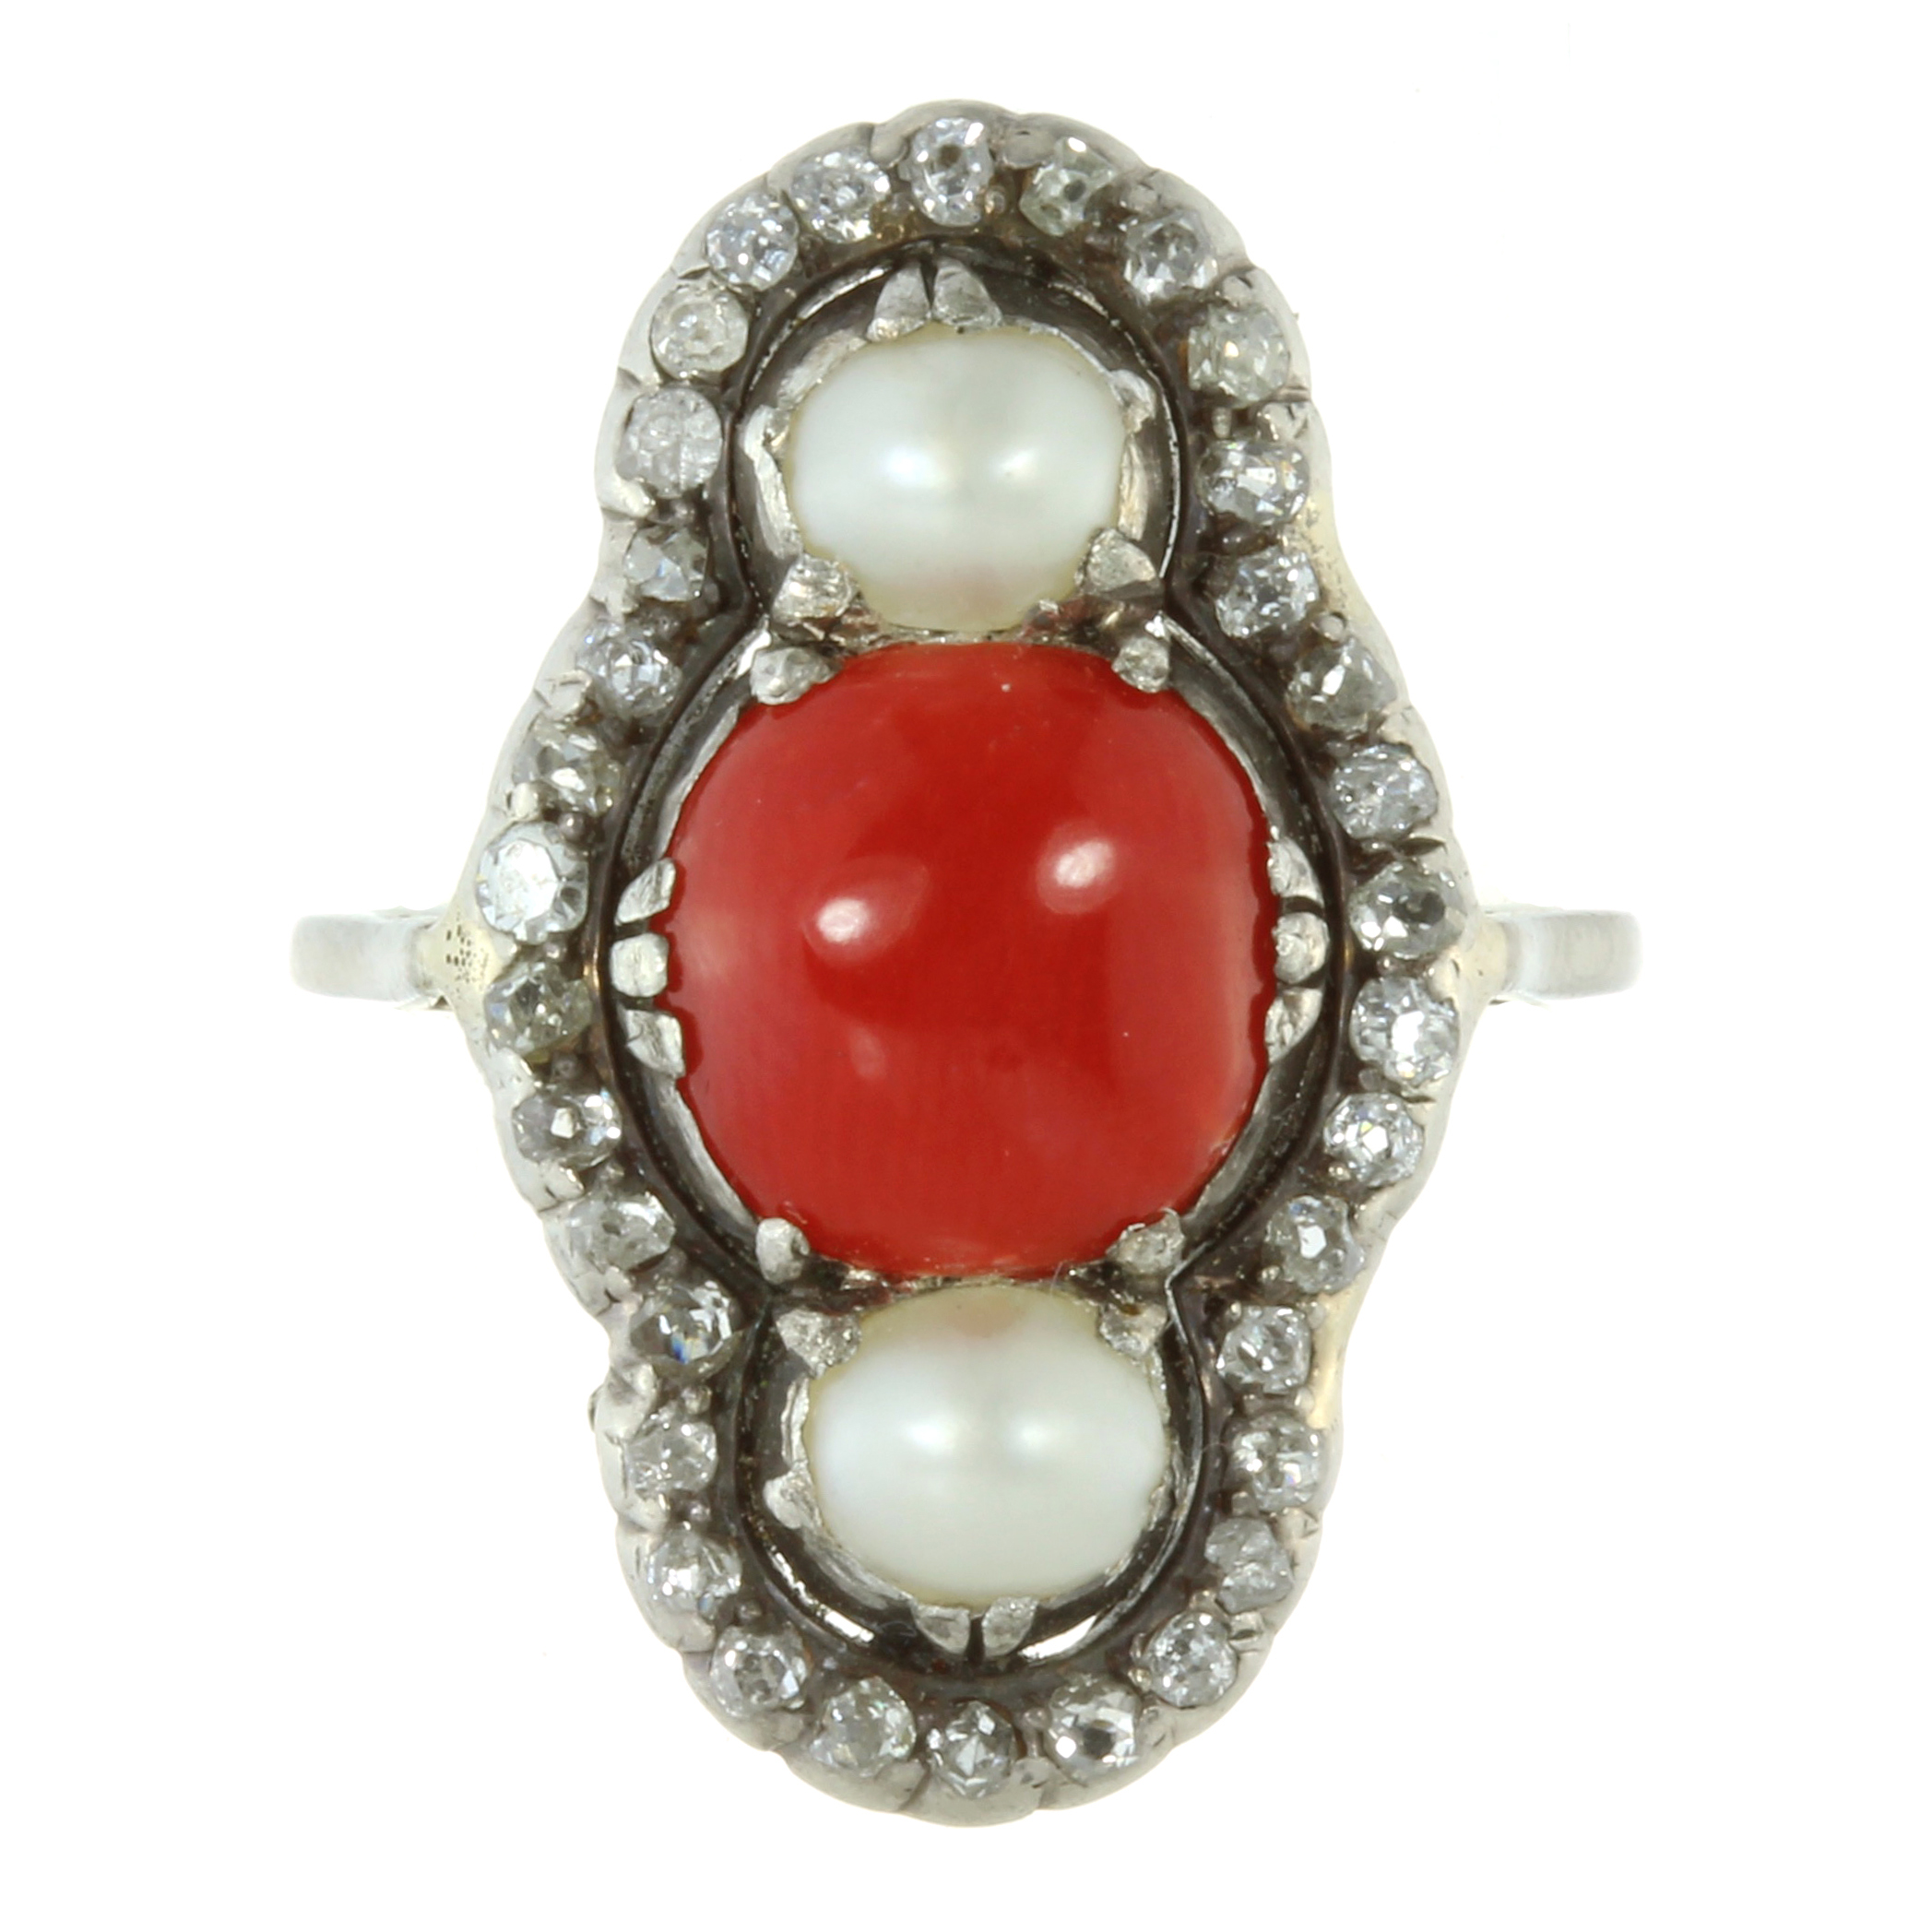 Los 18 - AN ANTIQUE CORAL, NATURAL PEARL AND DIAMOND RING in white gold or platinum, the elongated face set